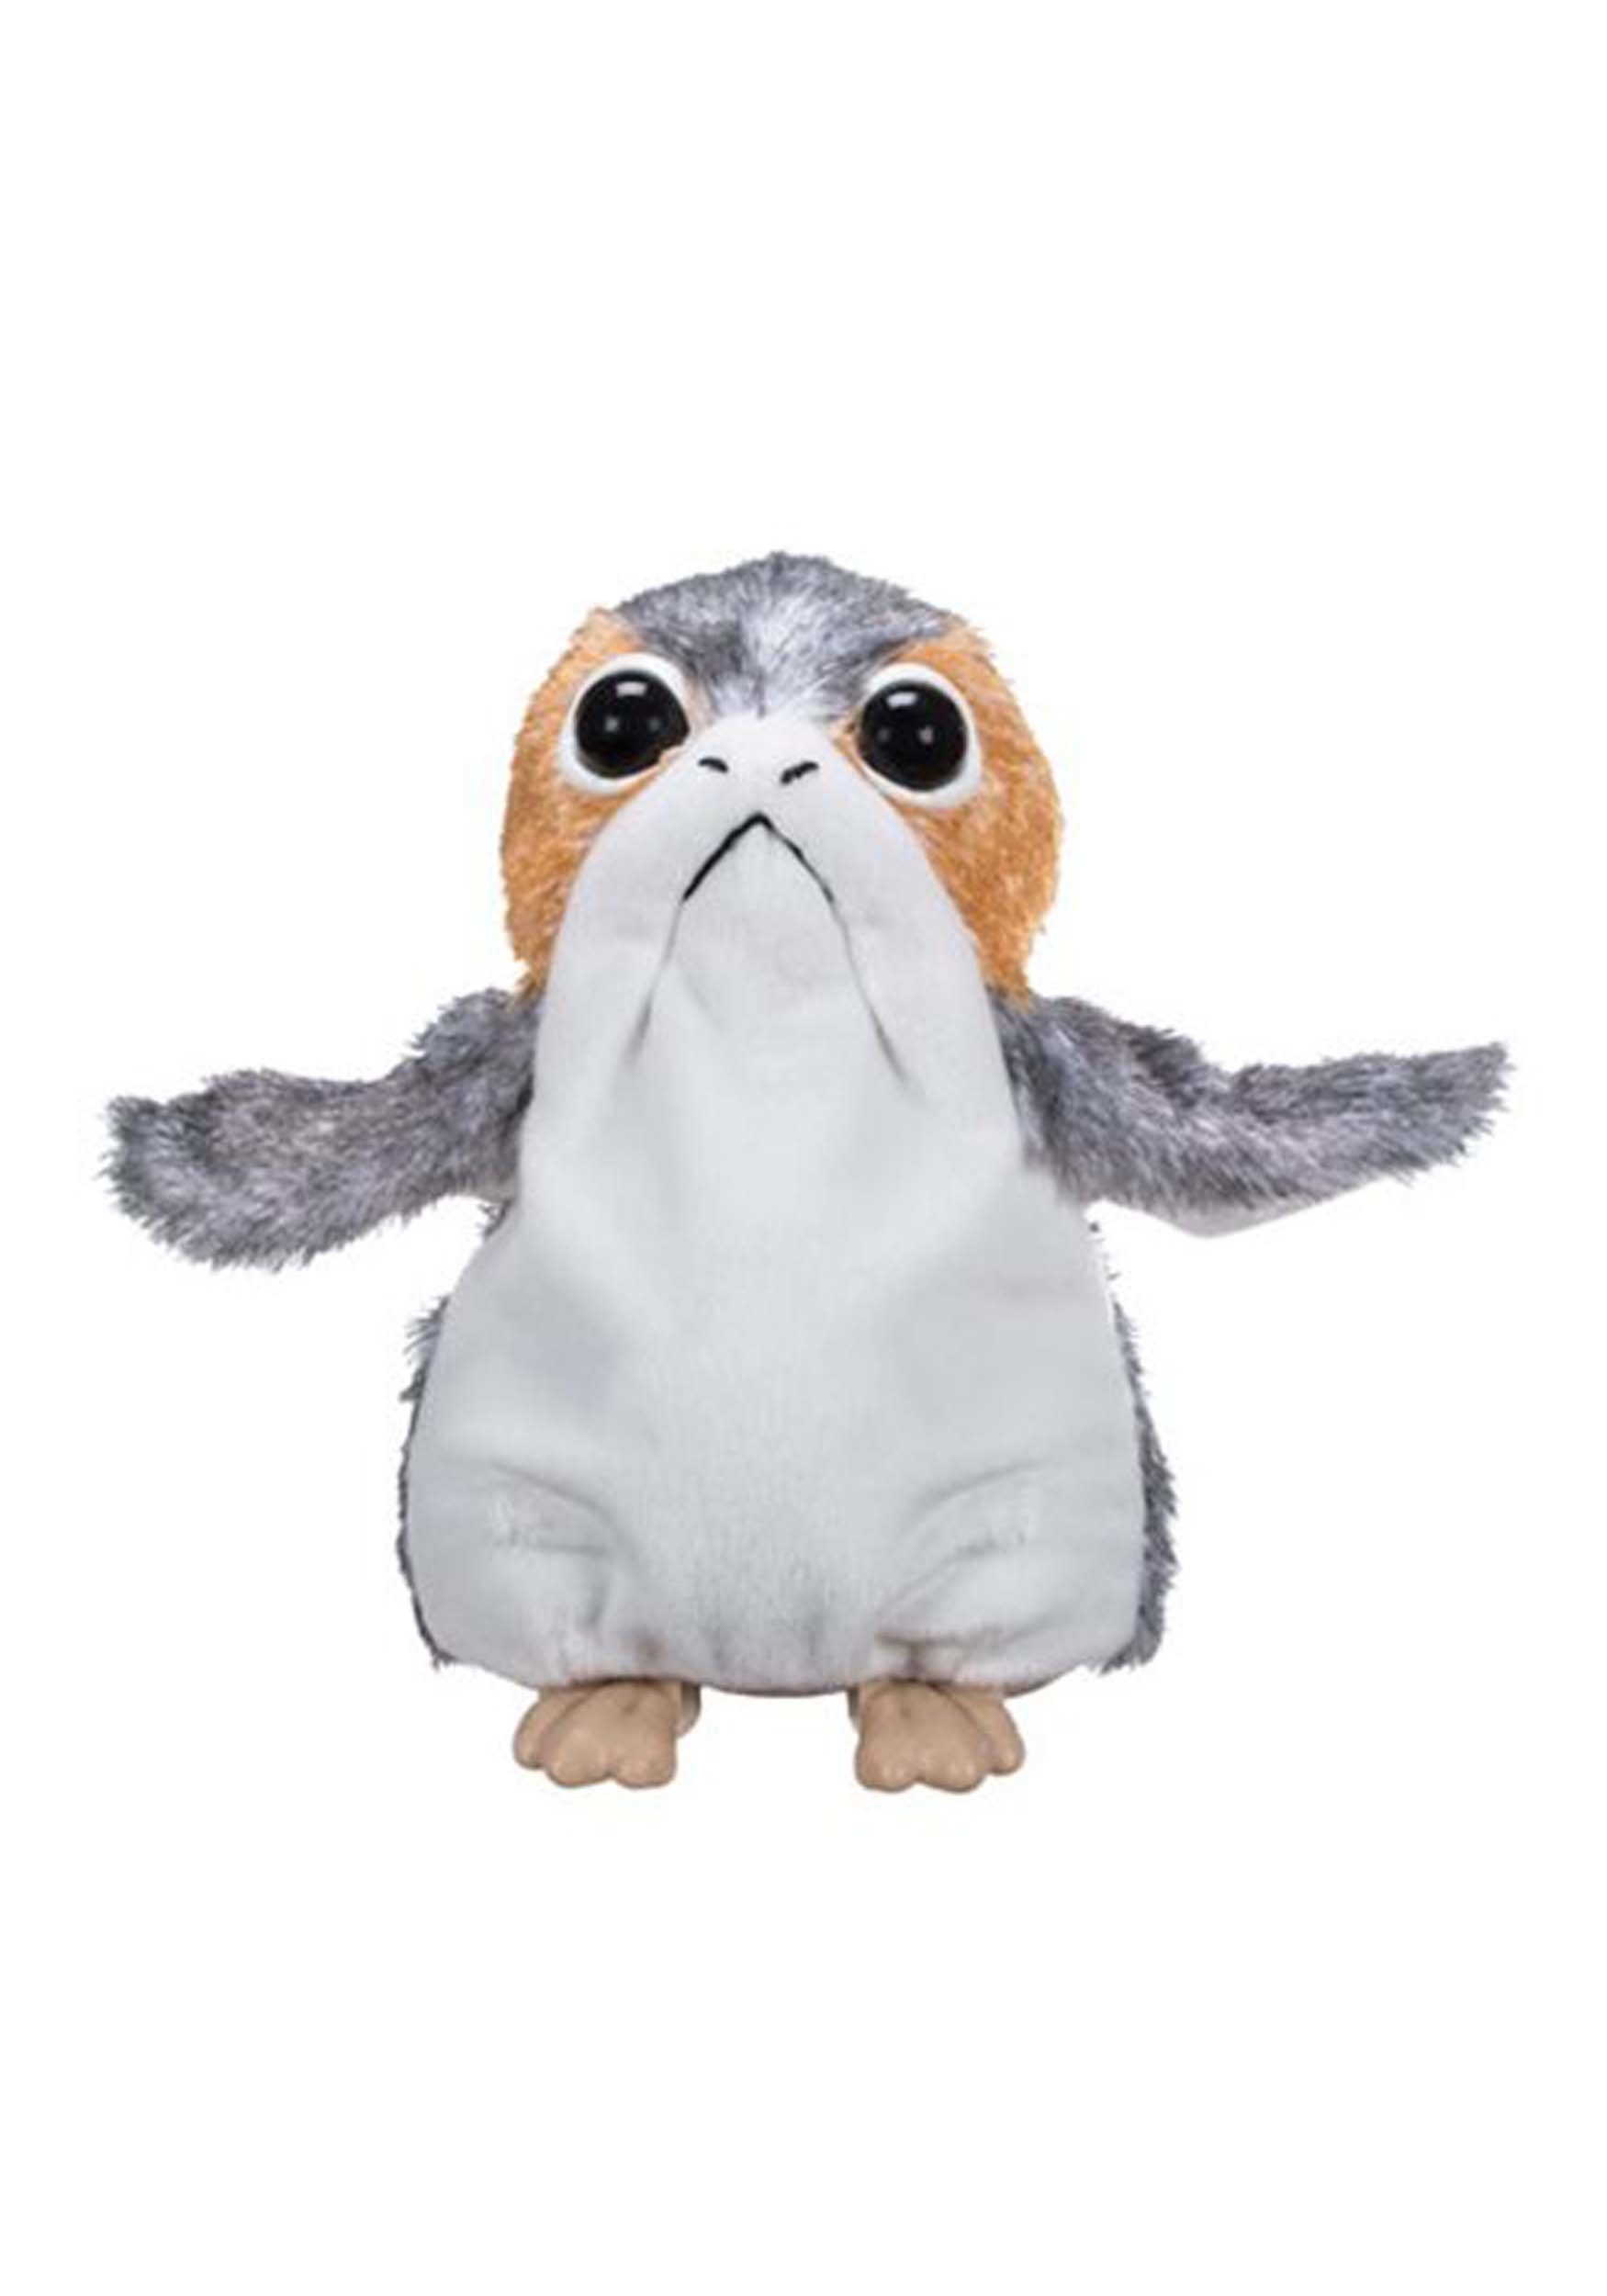 Star Wars: Porg Plush The Last Jedi